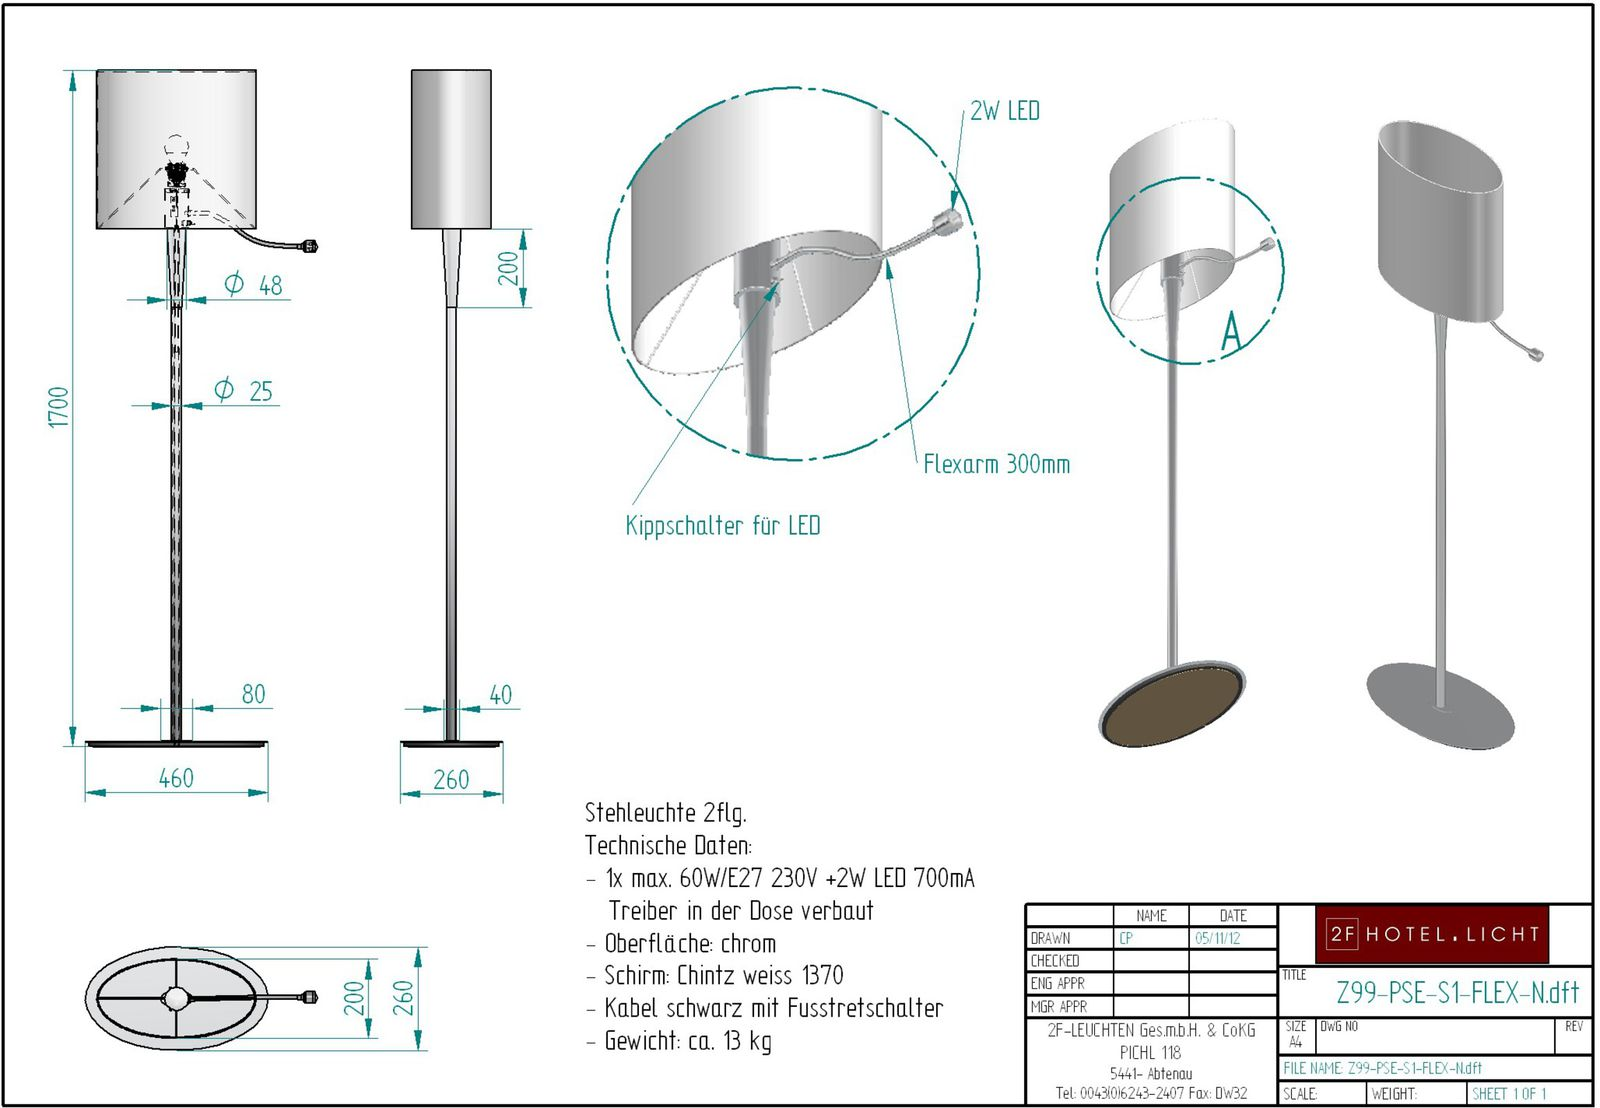 table lamp with flexarm Pure Seed, measure: 460mmx260mm, height=1700mm, surface: polished chrome